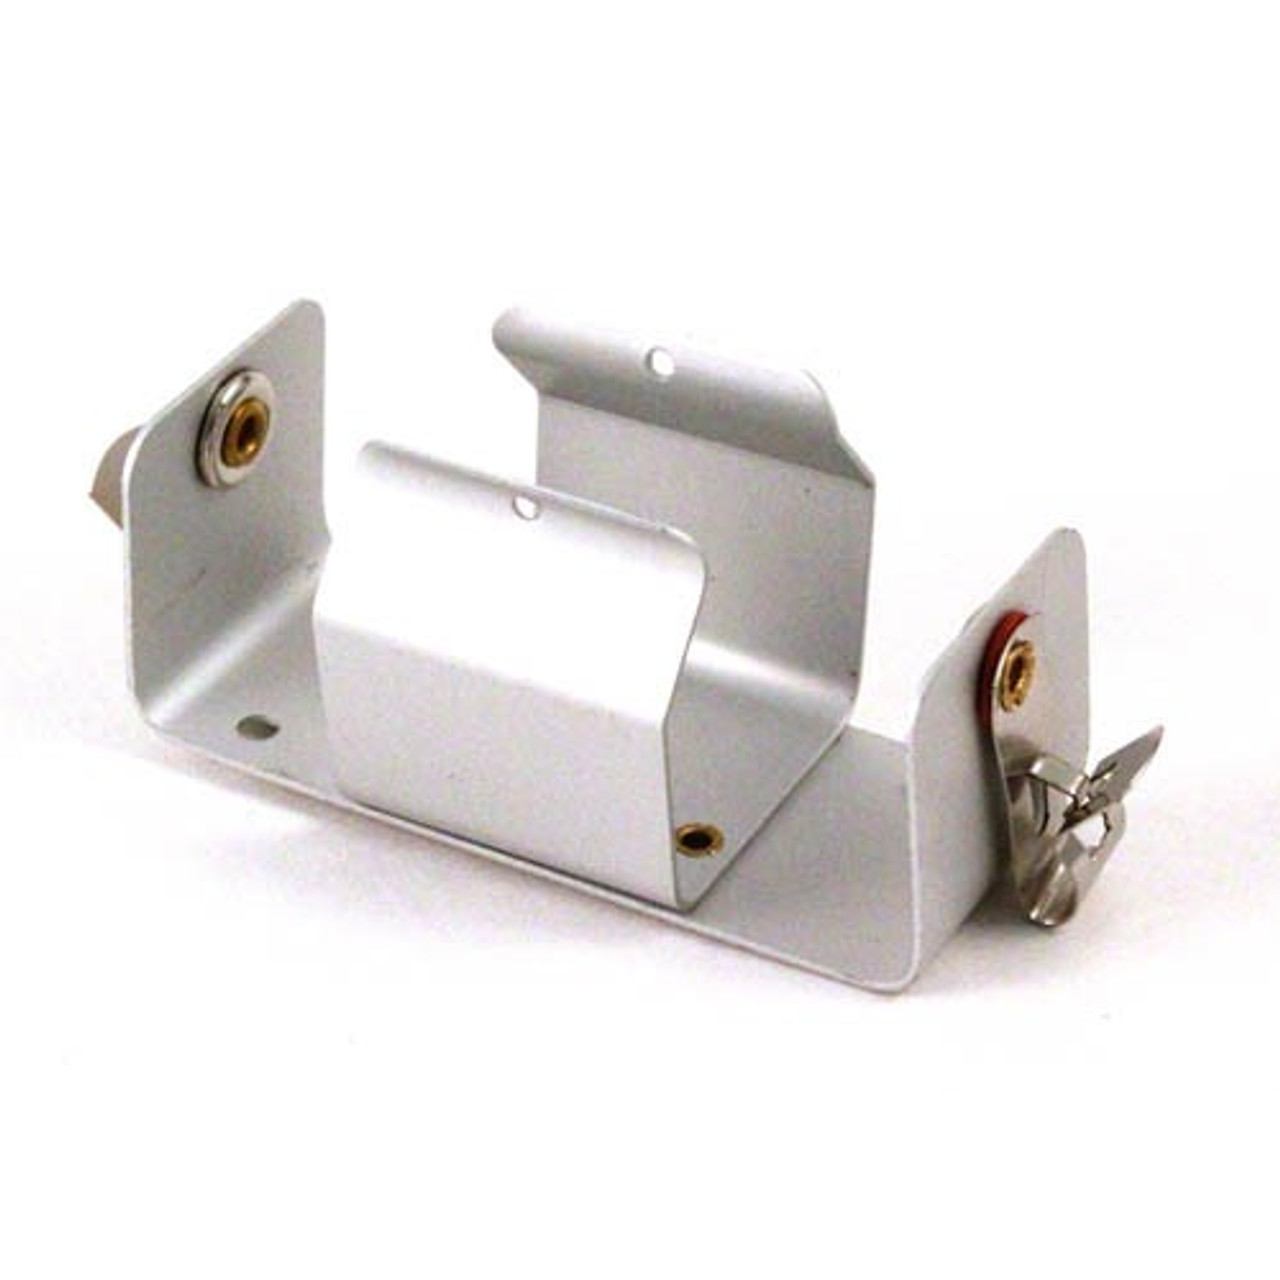 1-D metal battery holder with Fahnstock clips.